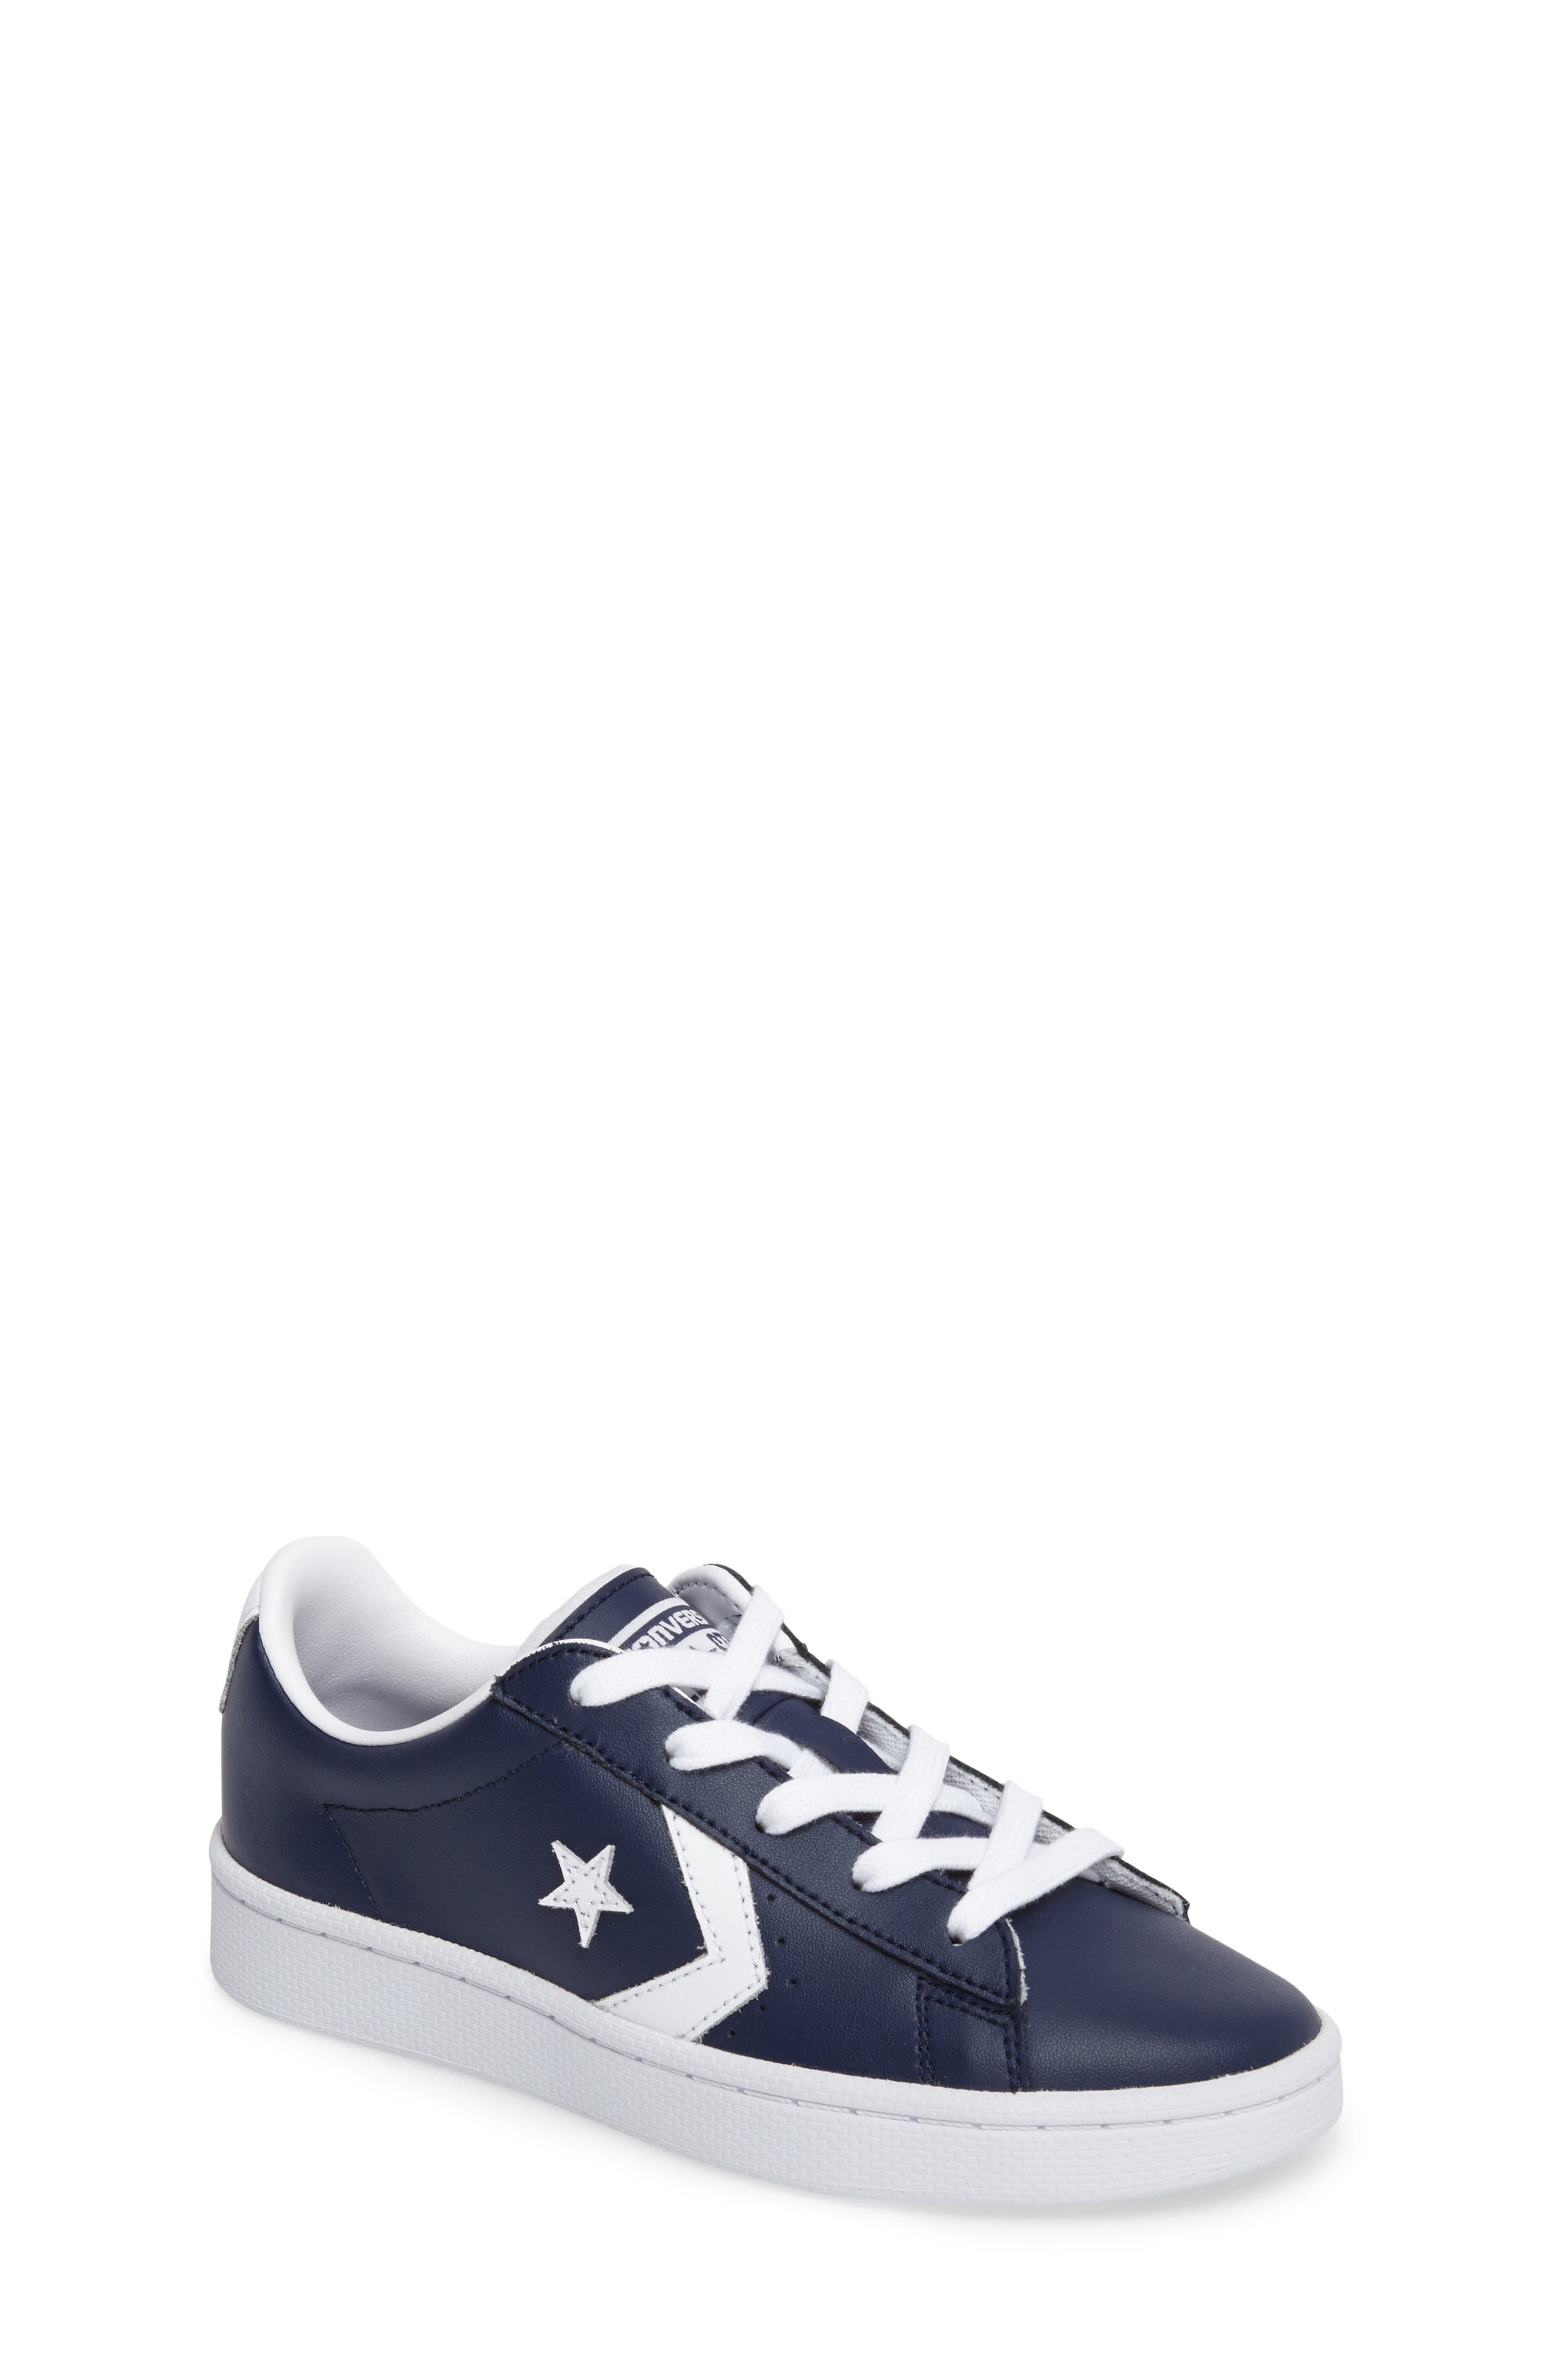 Main Image - Converse All Star® Pro Leather Low Top Sneaker (Toddler & Little Kid)